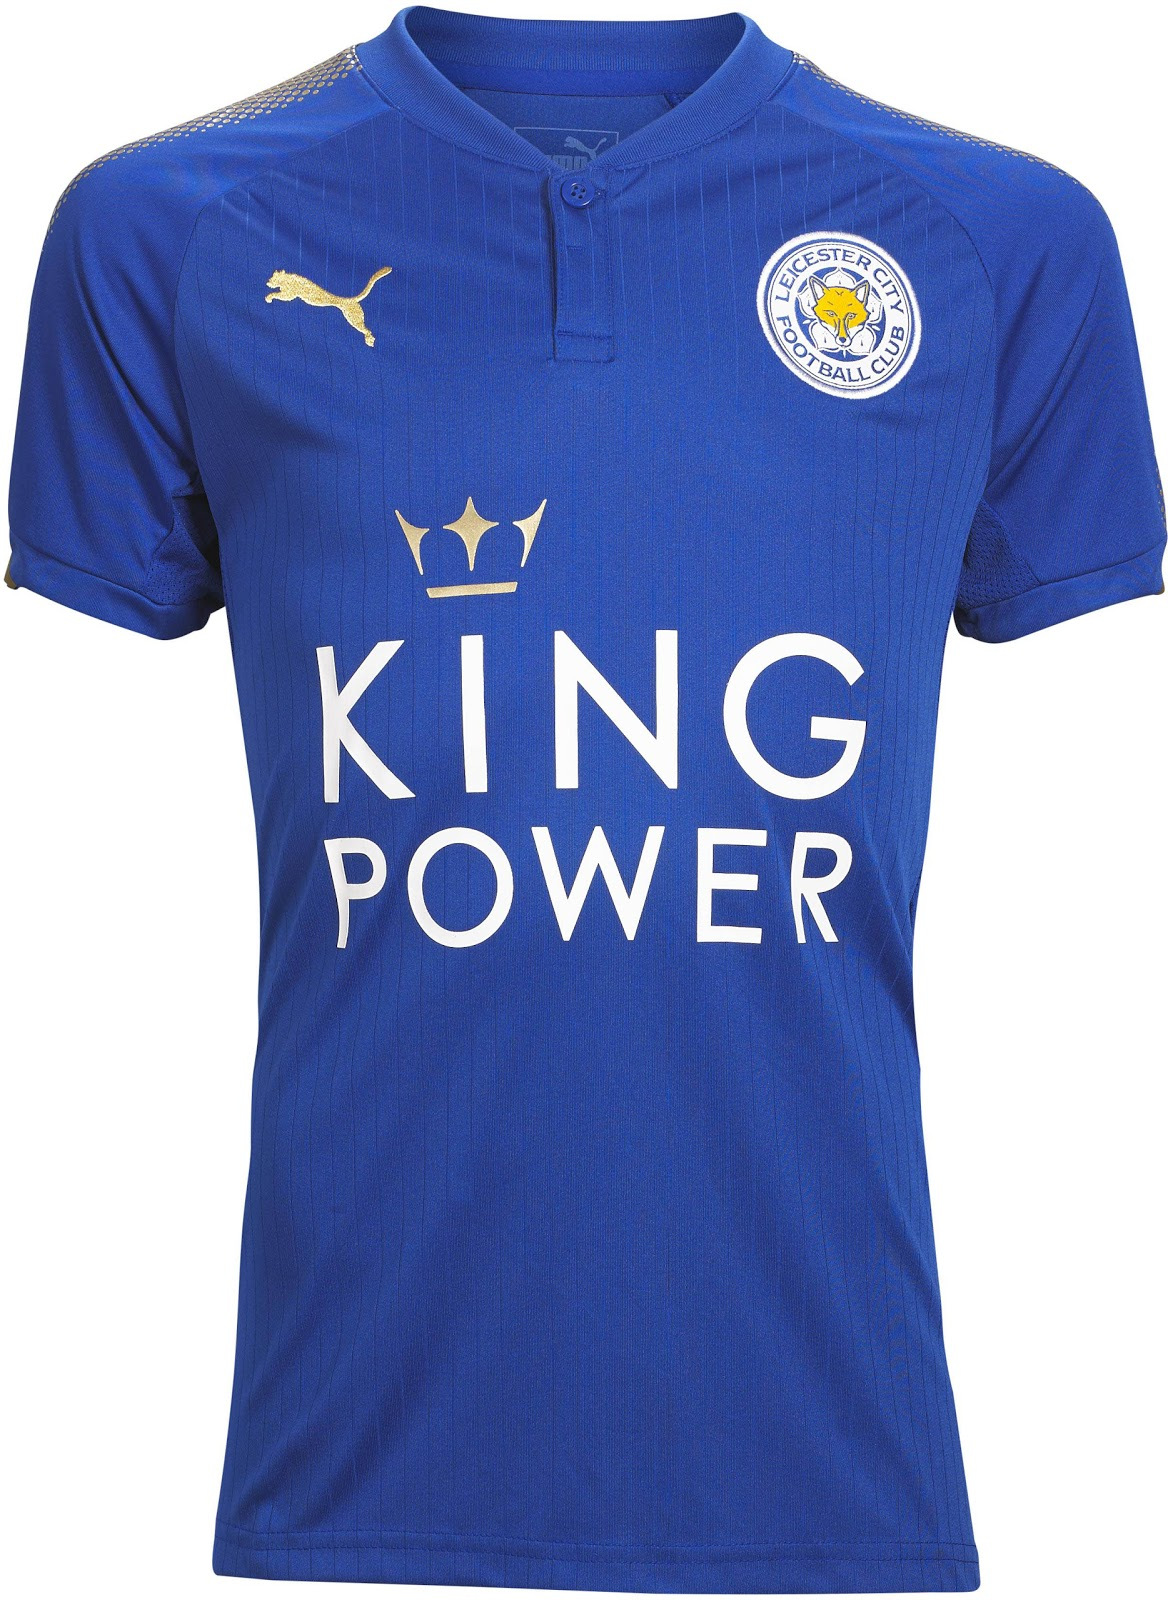 Leicester City 17-18 Home Kit Released - Footy Headlines